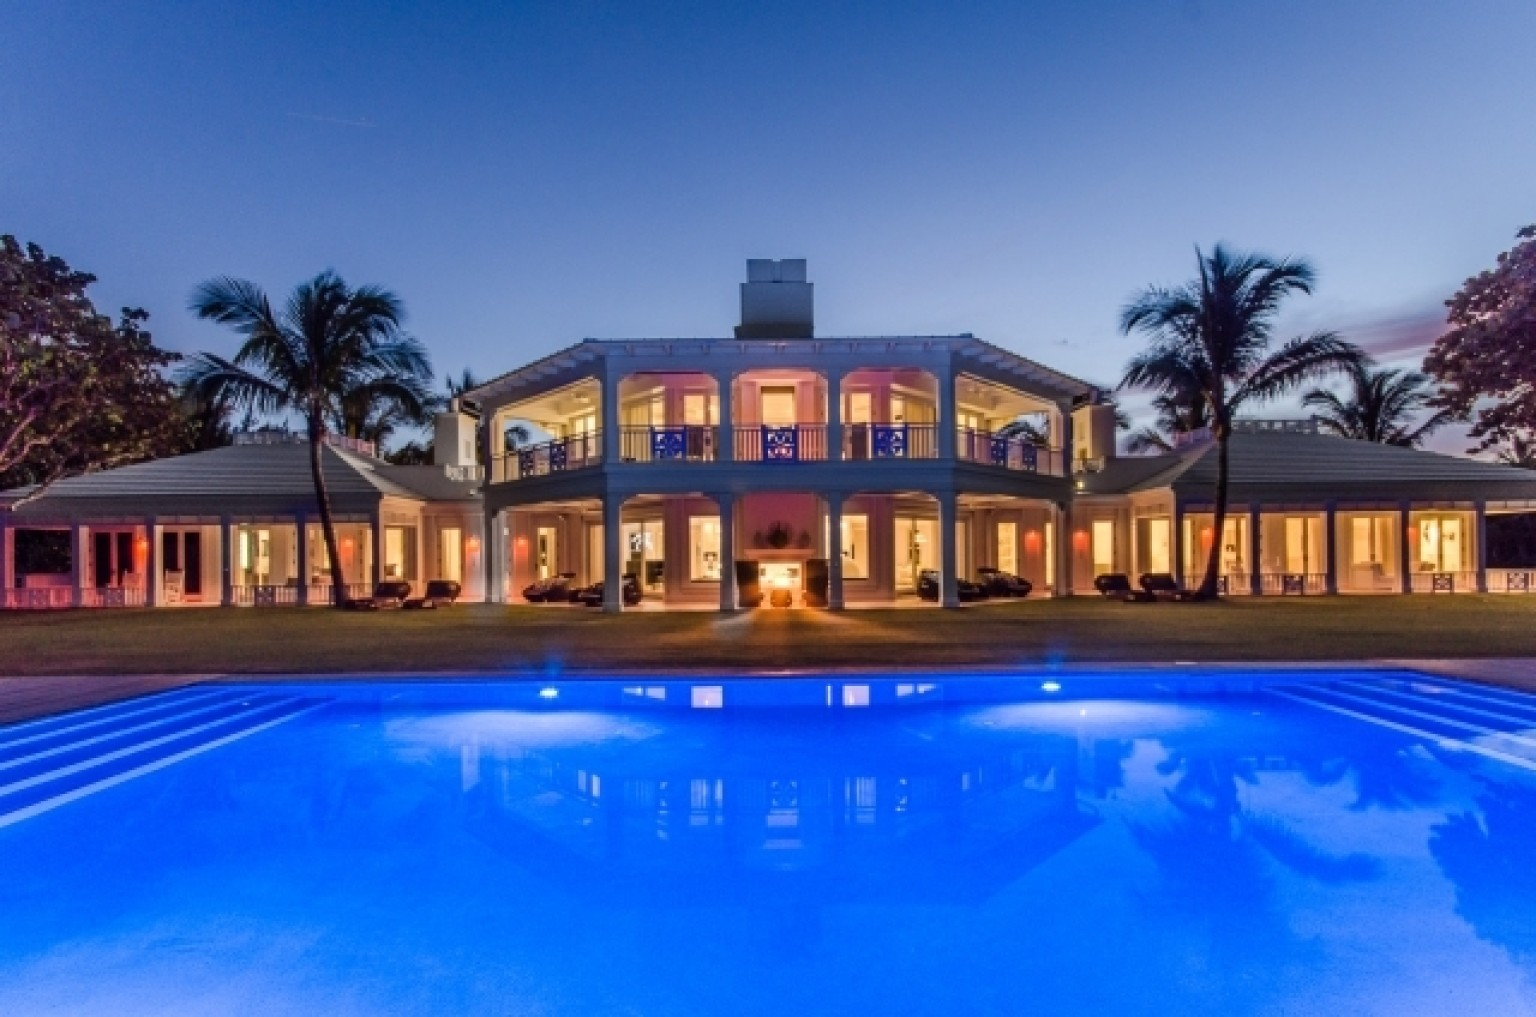 celine dion 39 s florida home hits market for 72 5 million